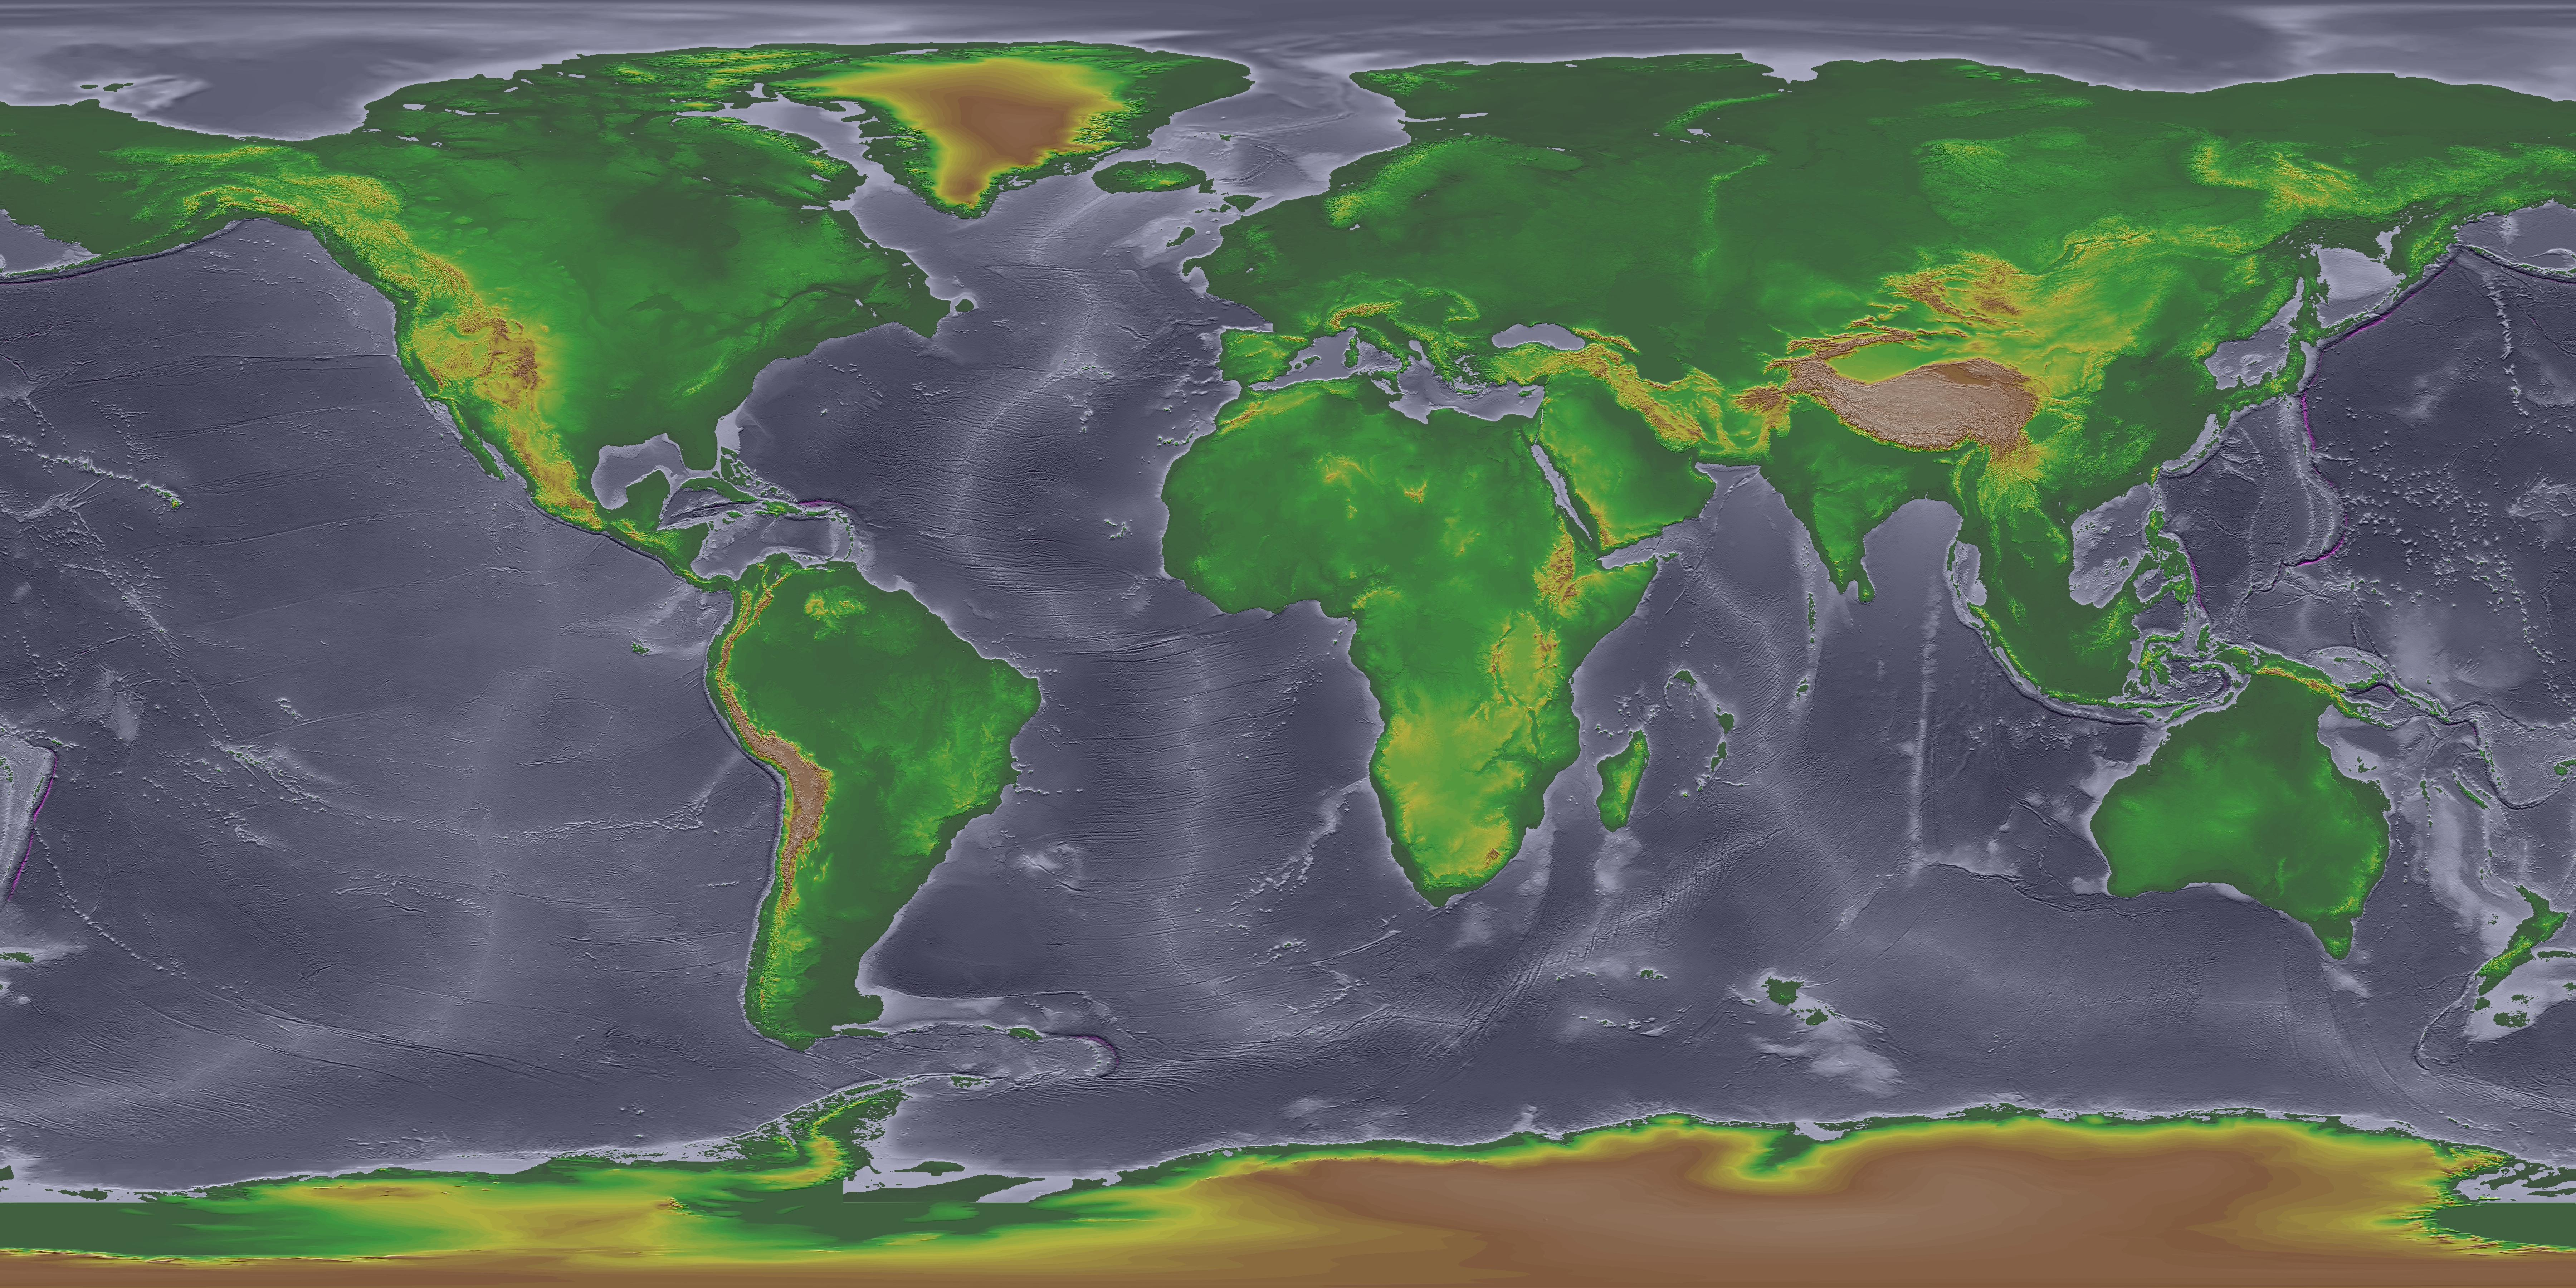 Global Land Onekm Base Elevation Project High Resolution Images – Map World High Resolution